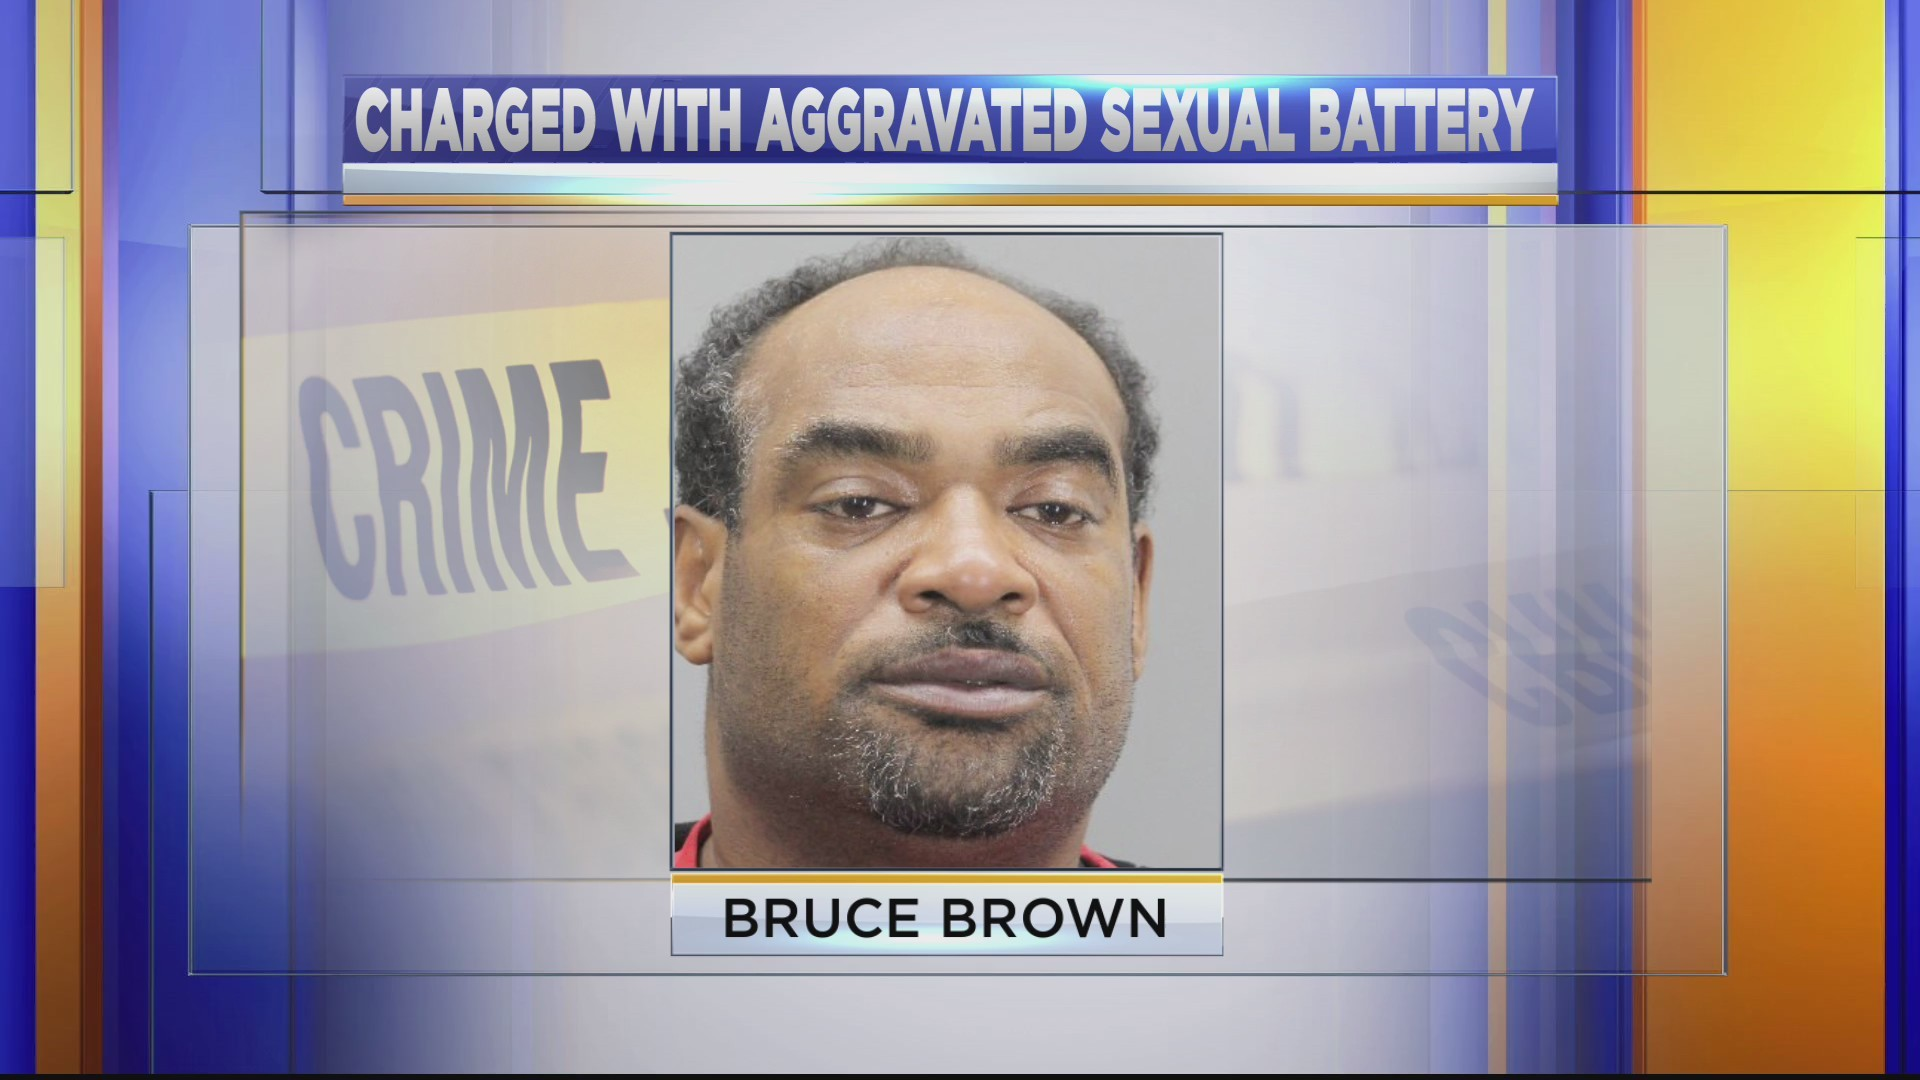 Aggravated_sexual_battery_arrest_0_20181116034038